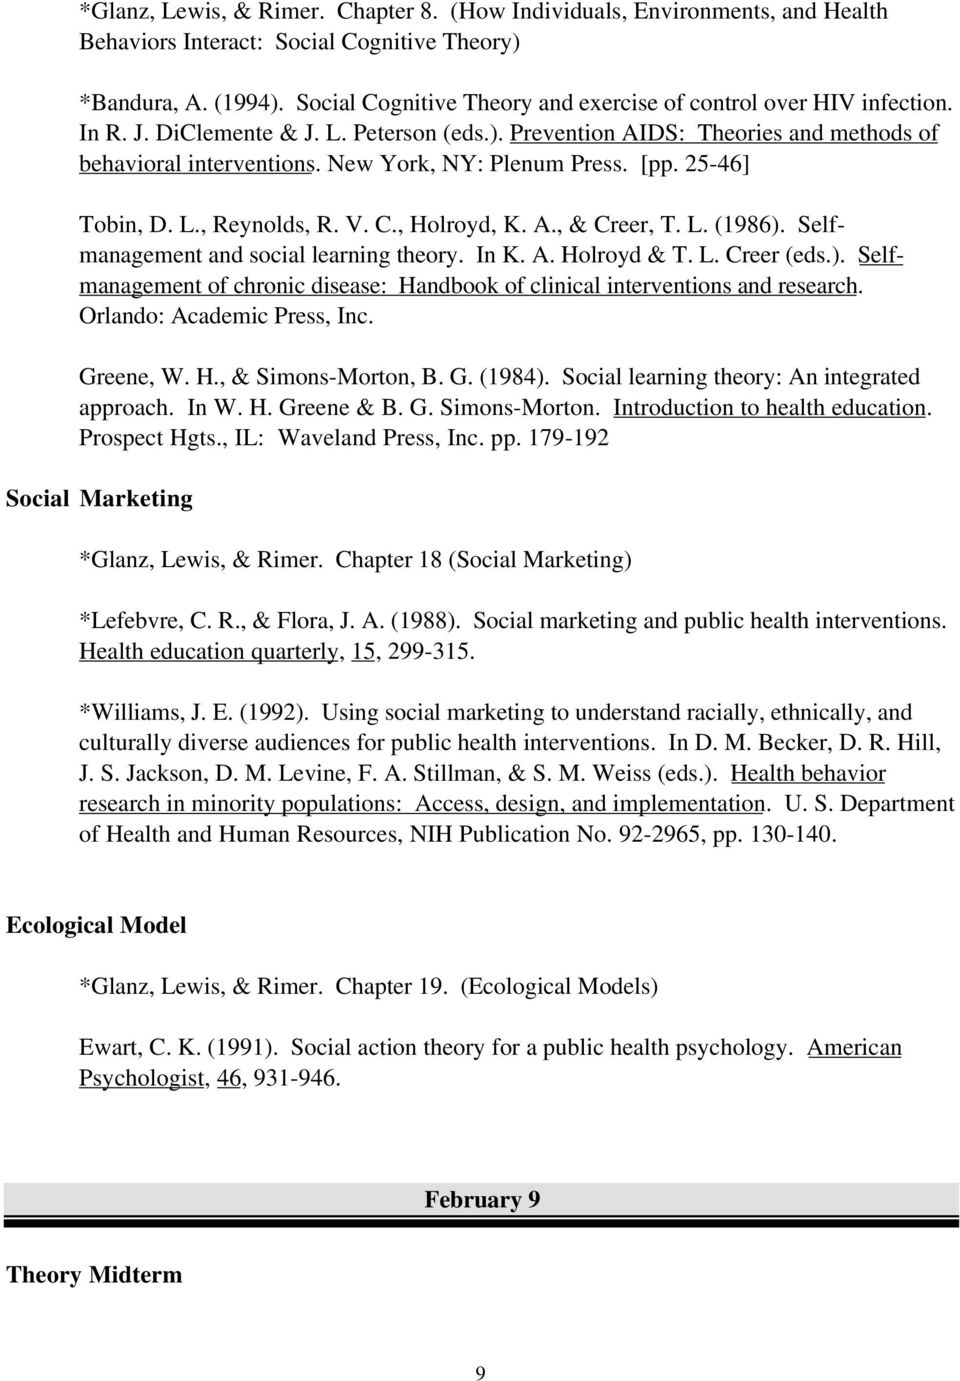 New York, NY: Plenum Press. [pp. 25-46] Tobin, D. L., Reynolds, R. V. C., Holroyd, K. A., & Creer, T. L. (1986). Selfmanagement and social learning theory. In K. A. Holroyd & T. L. Creer (eds.). Selfmanagement of chronic disease: Handbook of clinical interventions and research.